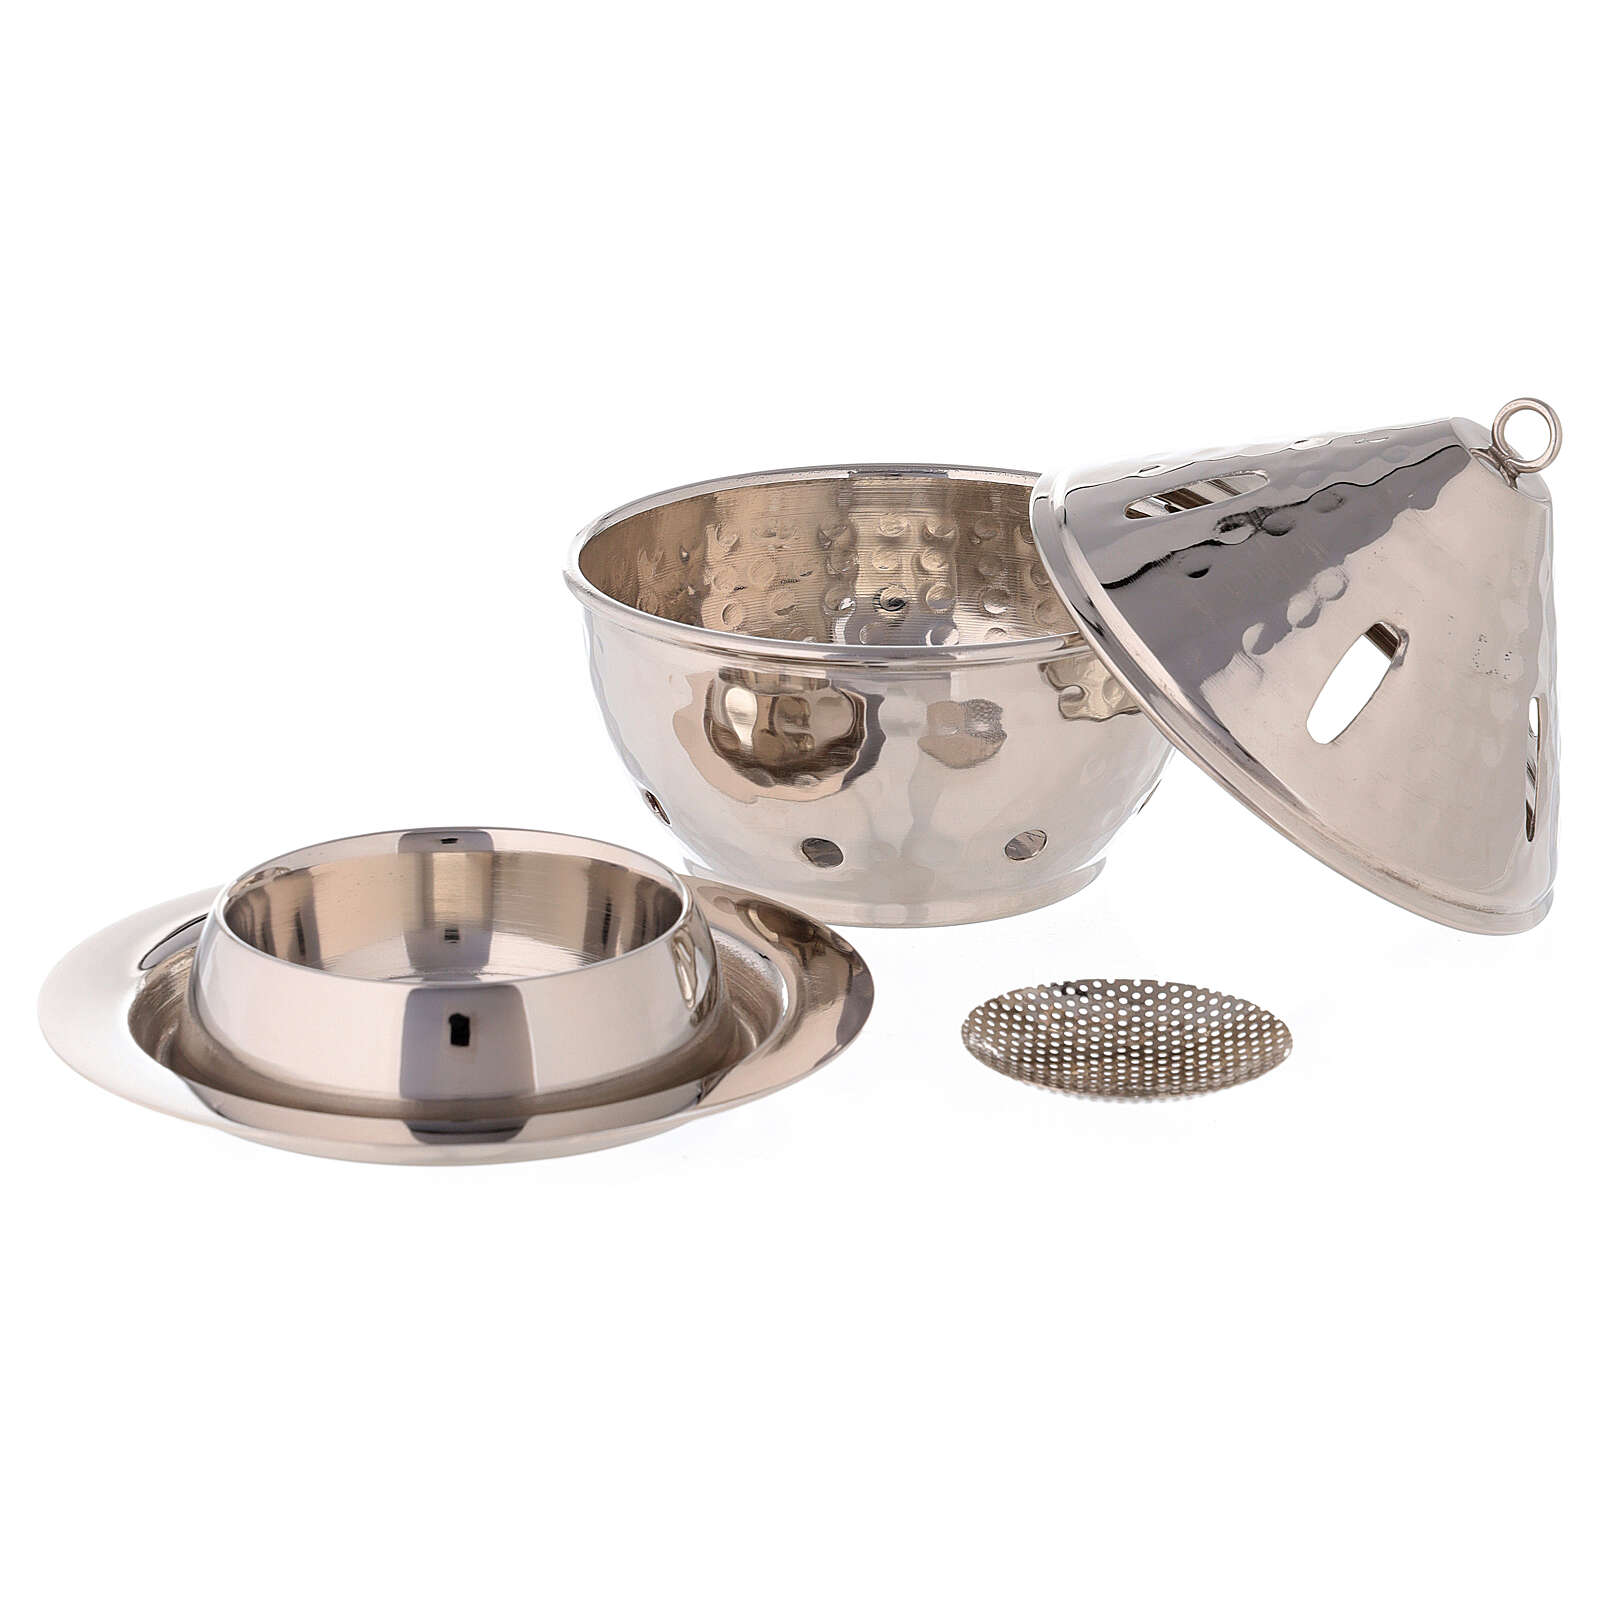 Drop shaped incense burner in hammered nickel-plated brass h 5 in 3